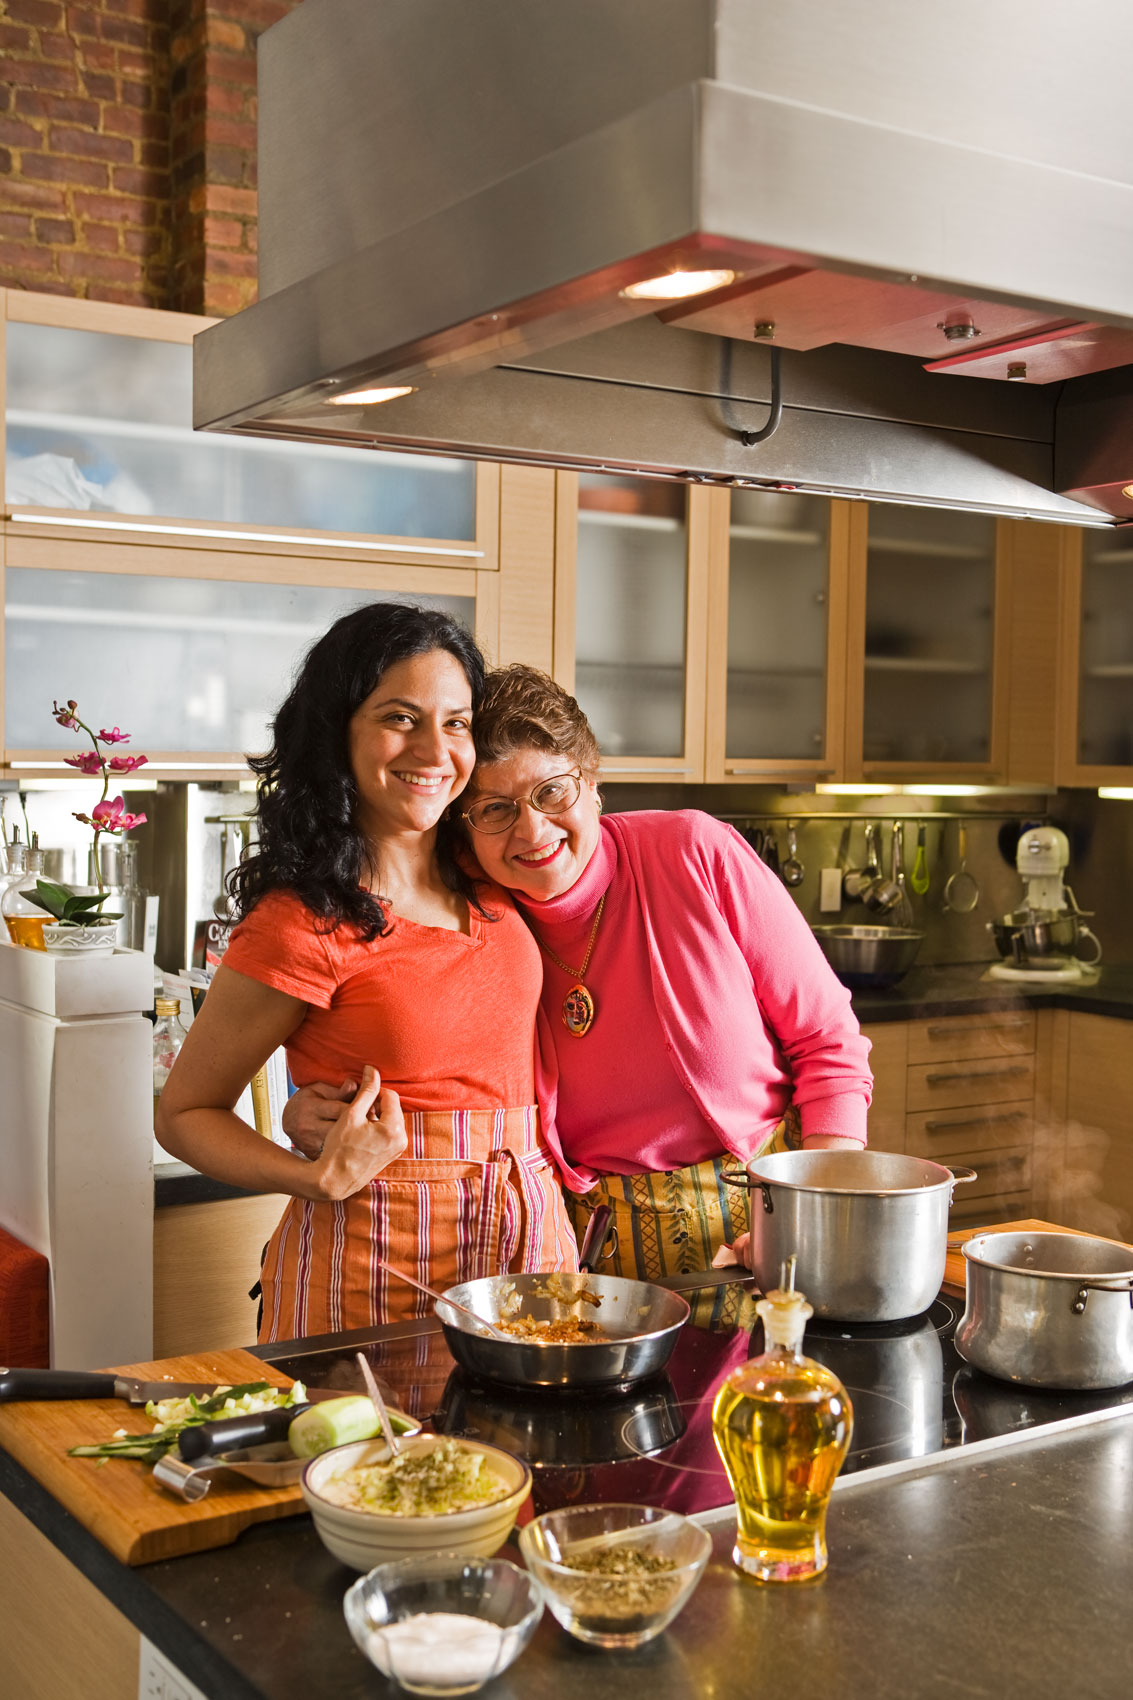 Chef Jennifer Abadi, Mother and Daughter in the Kitchen, by Portrait and Lifestyle Photographer Michael Weschler